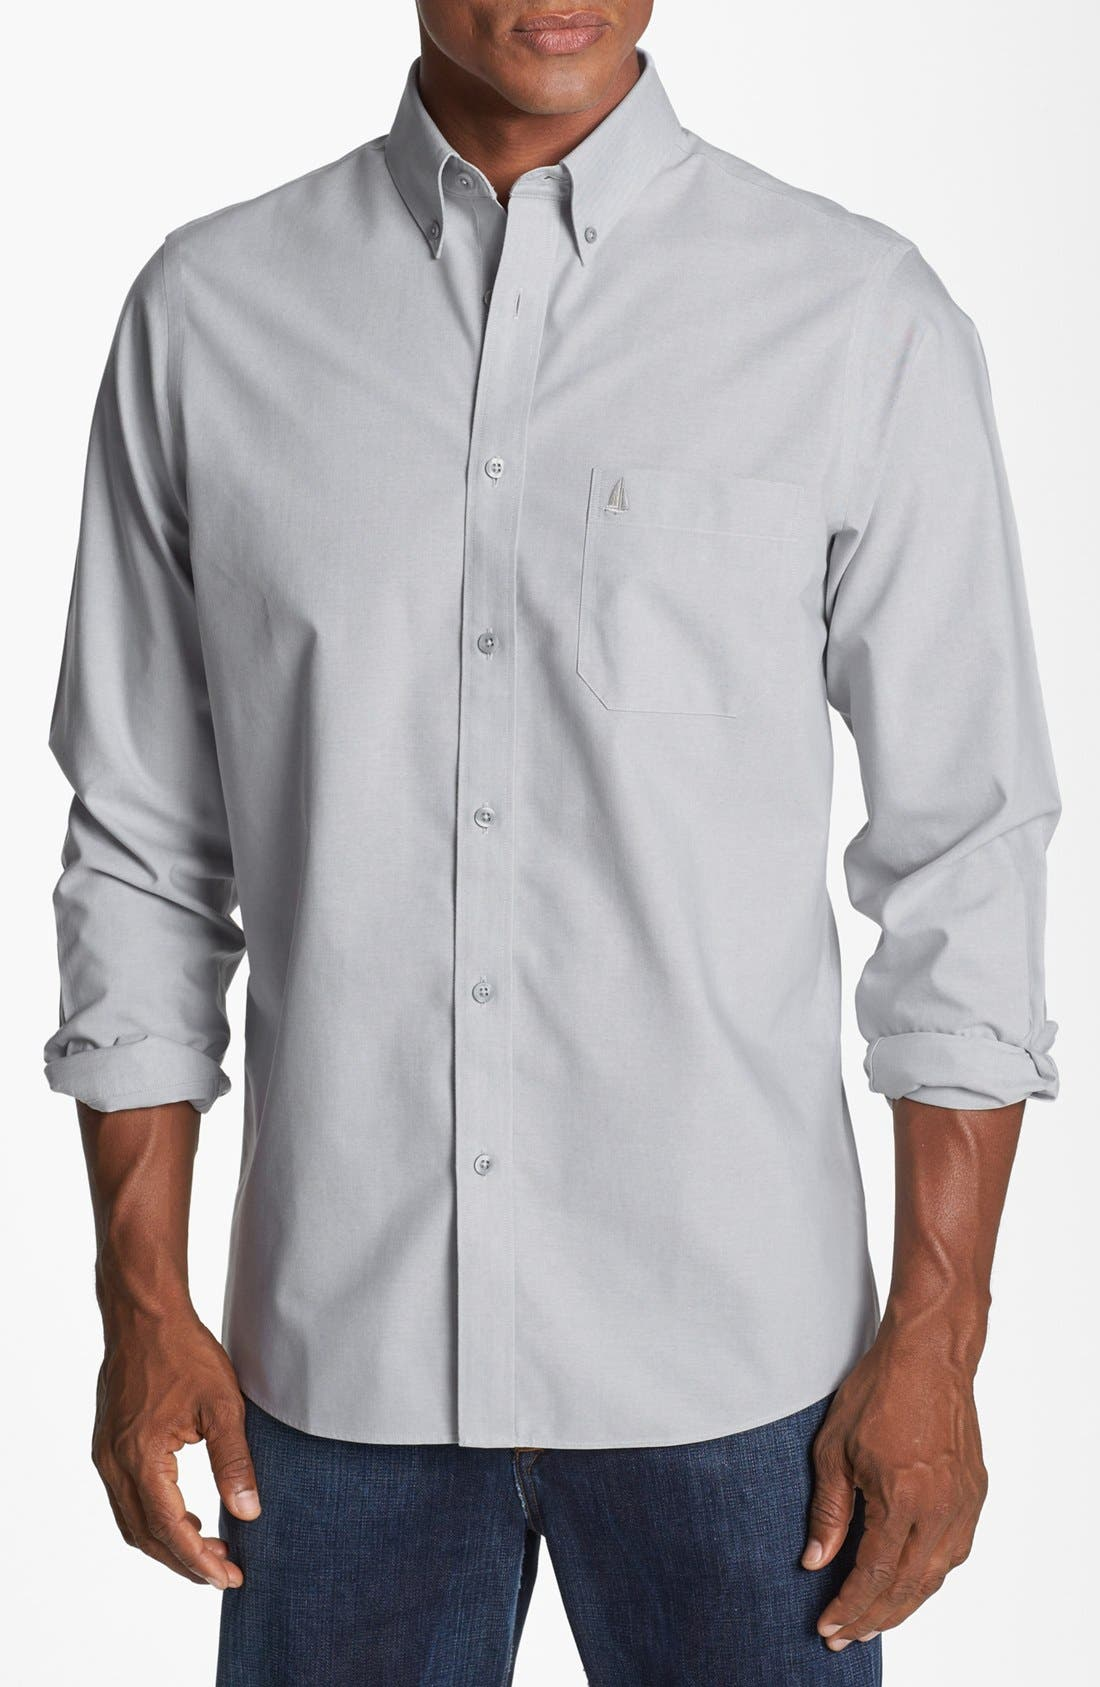 Main Image - Nordstrom Men's Shop Smartcare™ Regular Fit Oxford Sport Shirt (Tall)